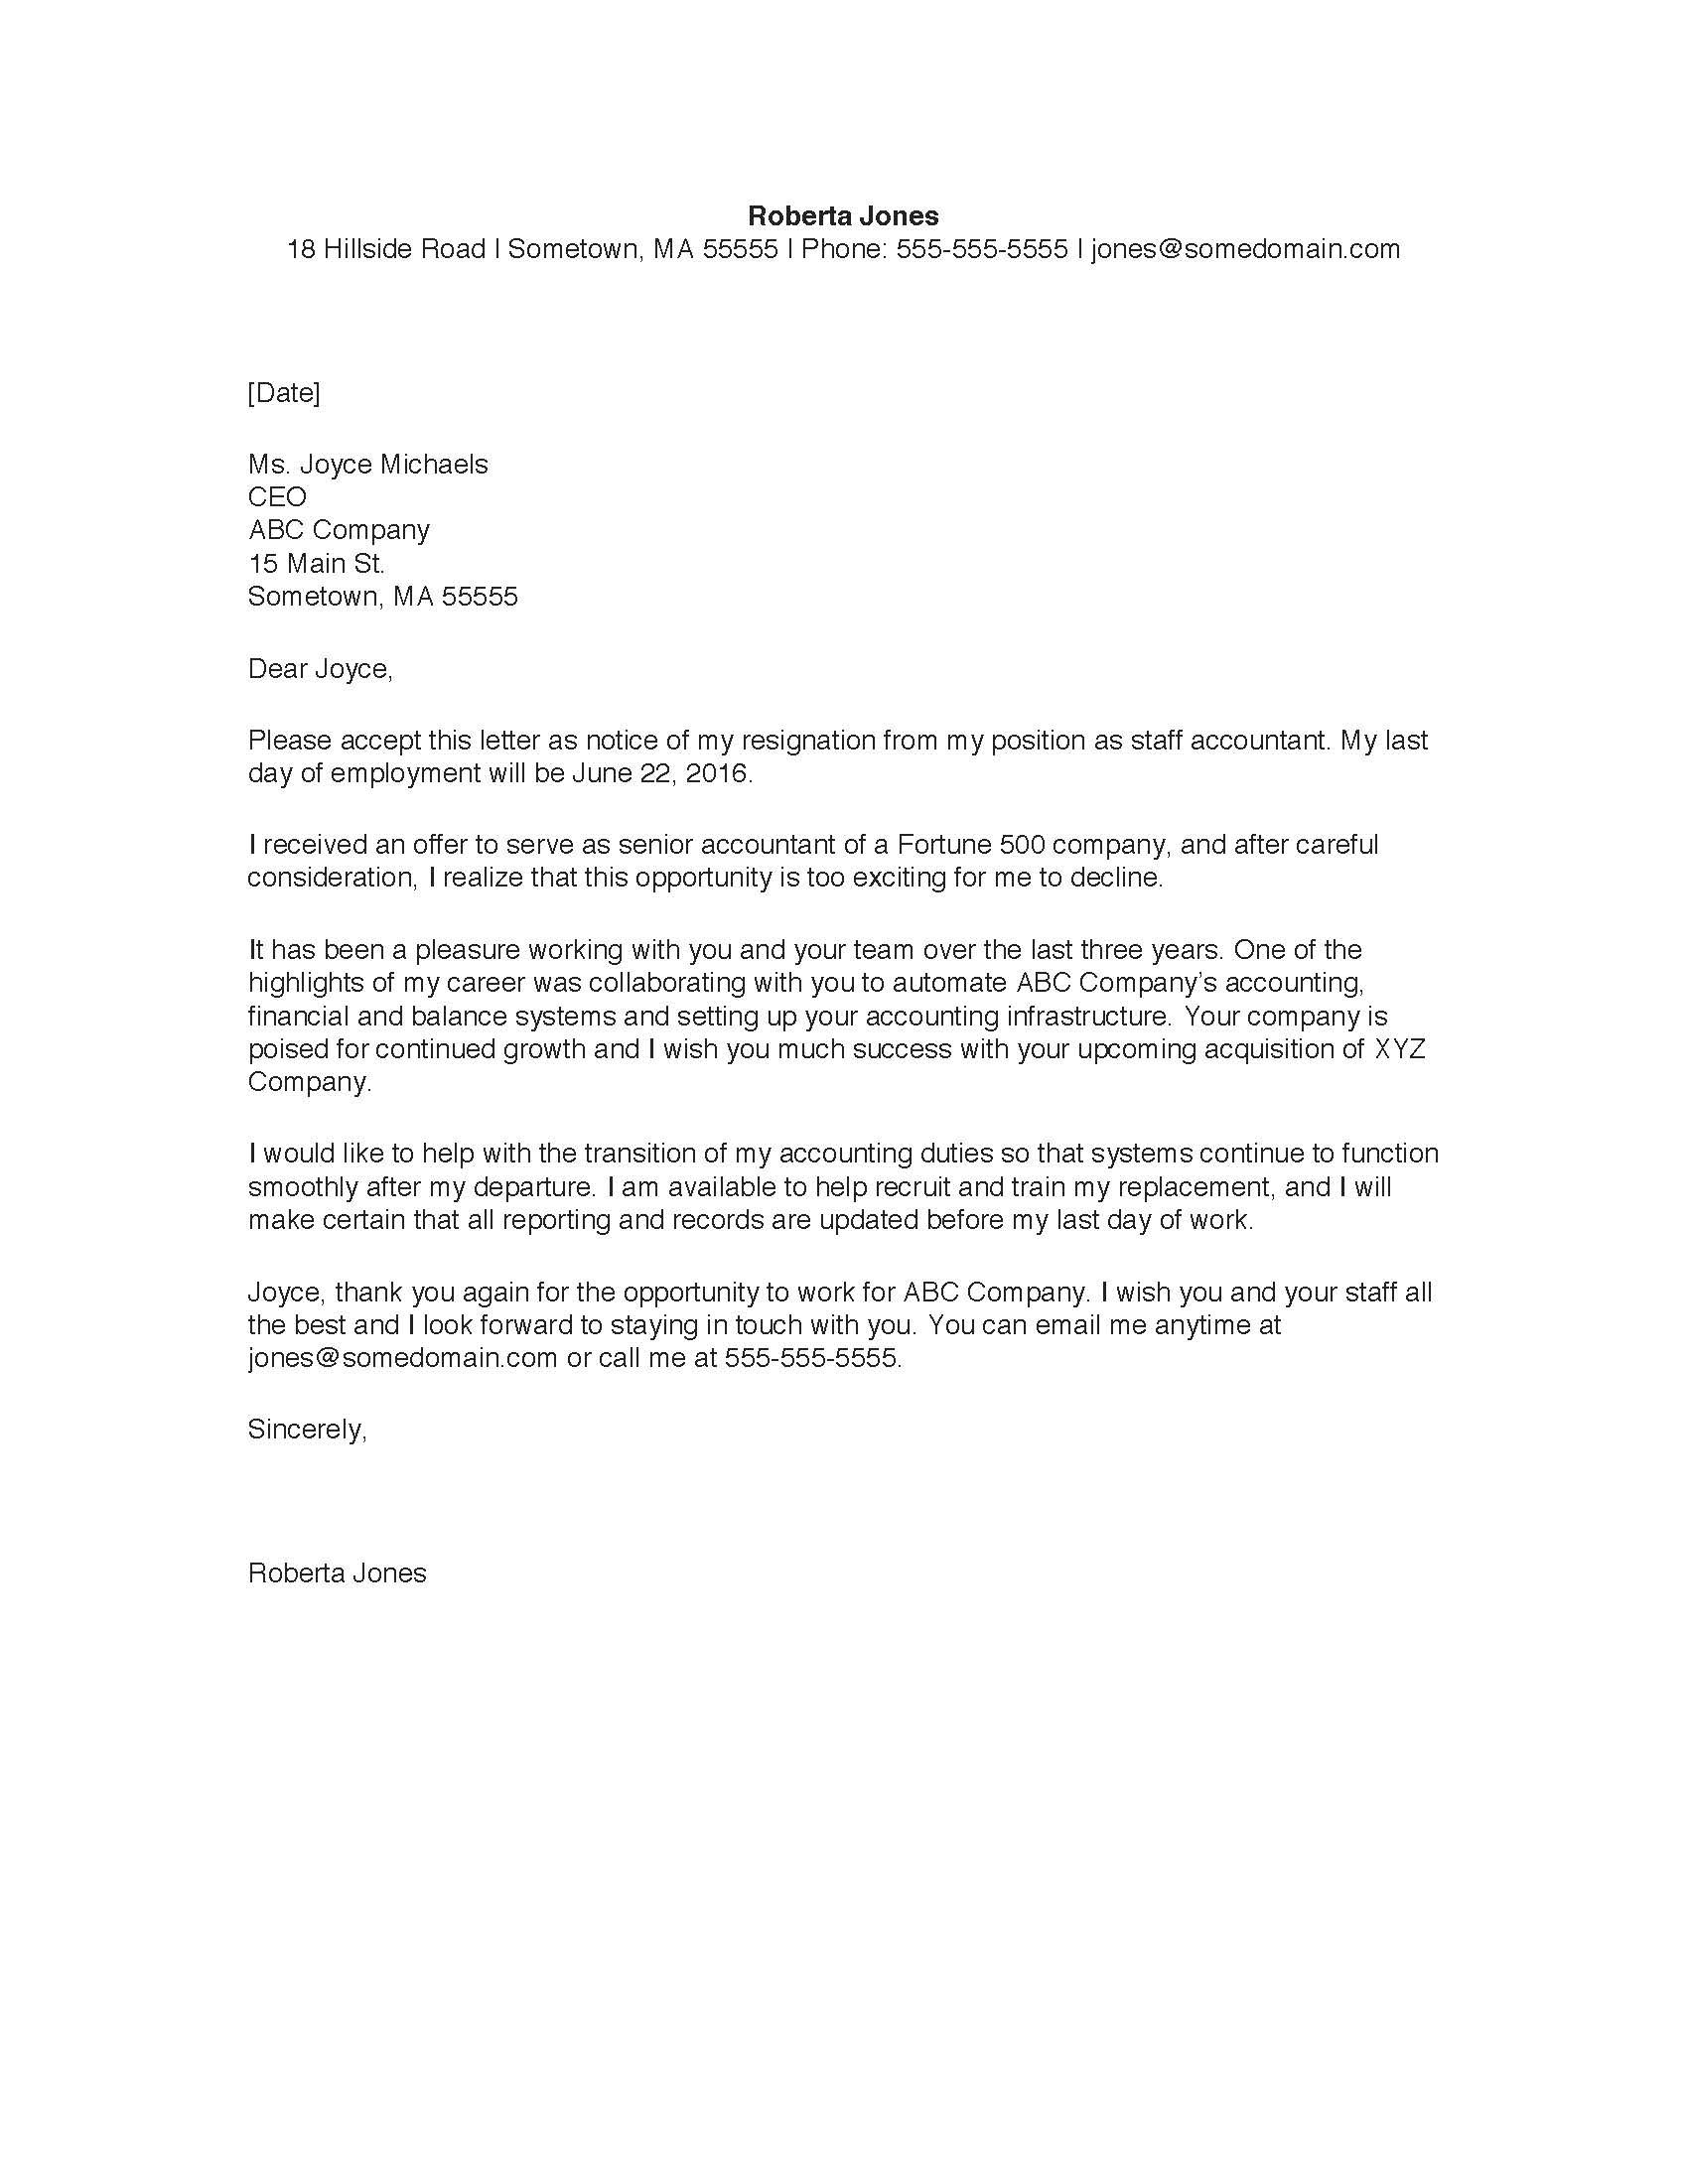 Sample resignation letter Job resignation letter, How to